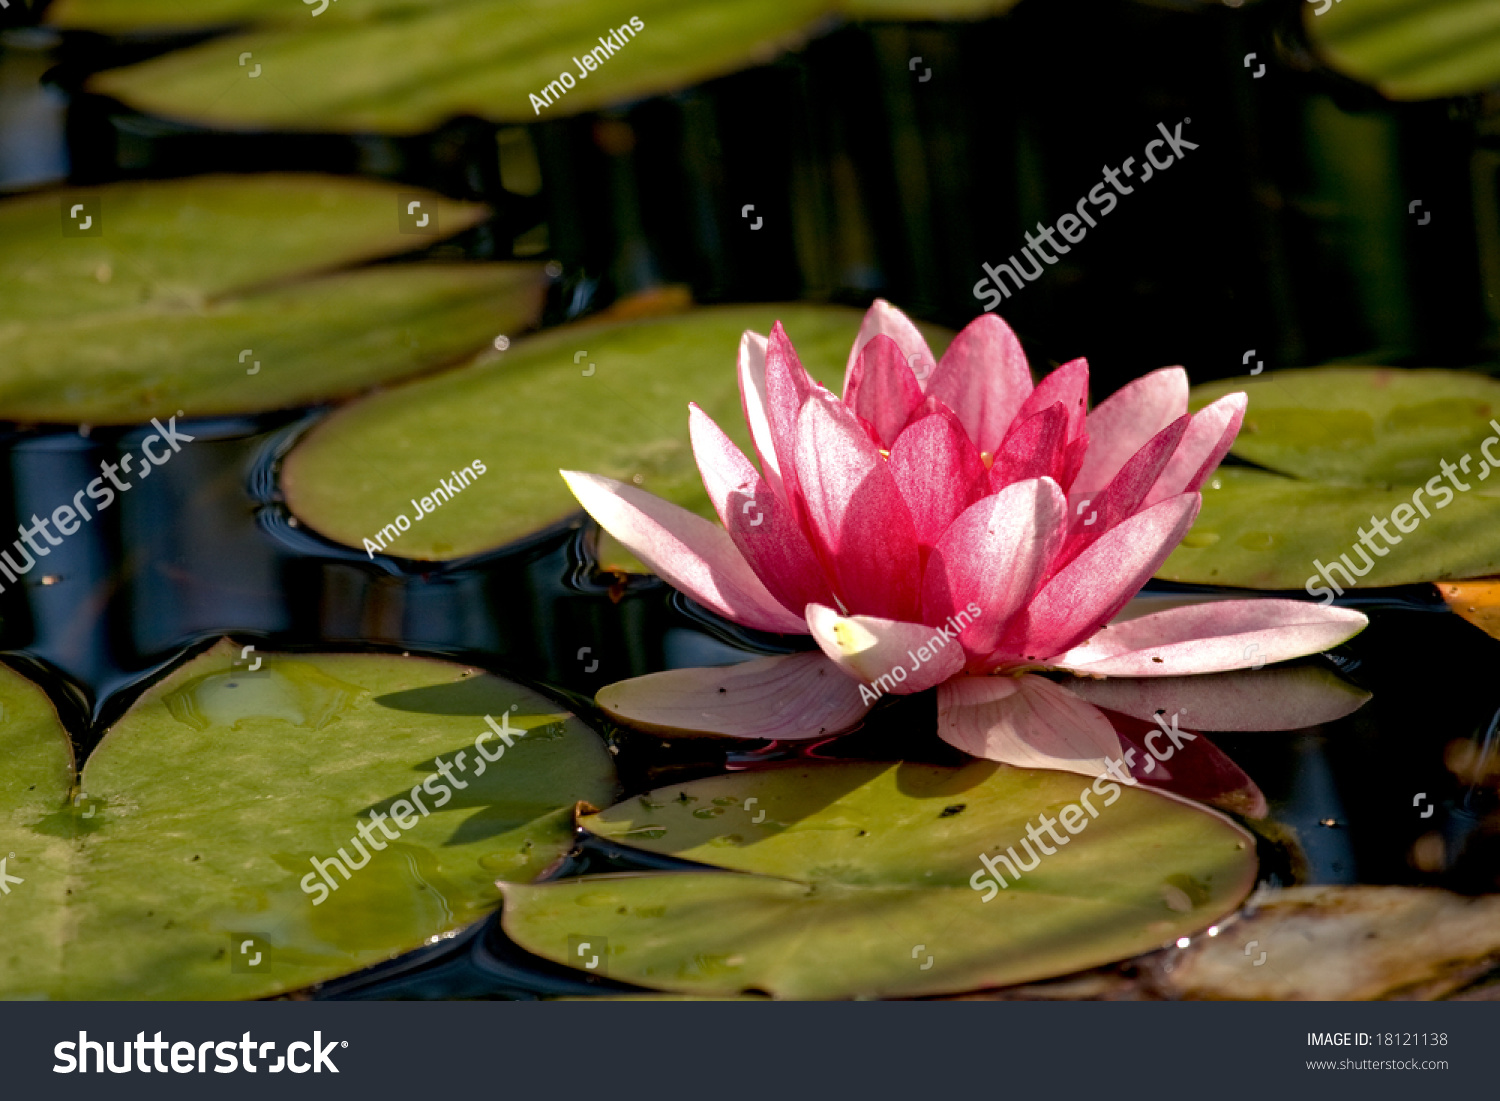 Lilly pad pond pink flower stock photo edit now 18121138 lilly pad in a pond with a pink flower izmirmasajfo